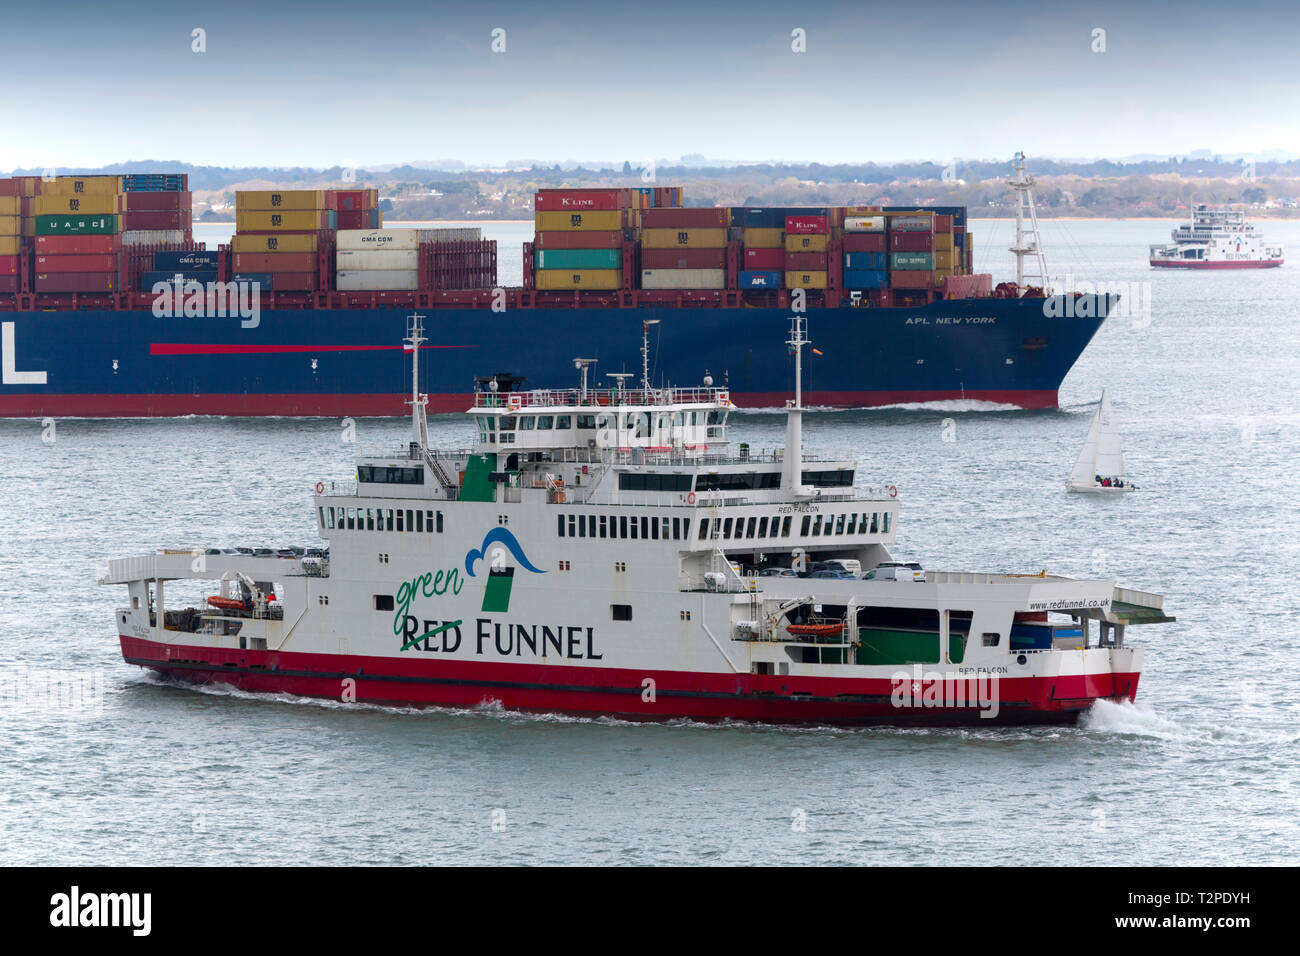 Red Funnel,Car,Ferry,ferries,Red Falcon,yacht,APL,New York,Container